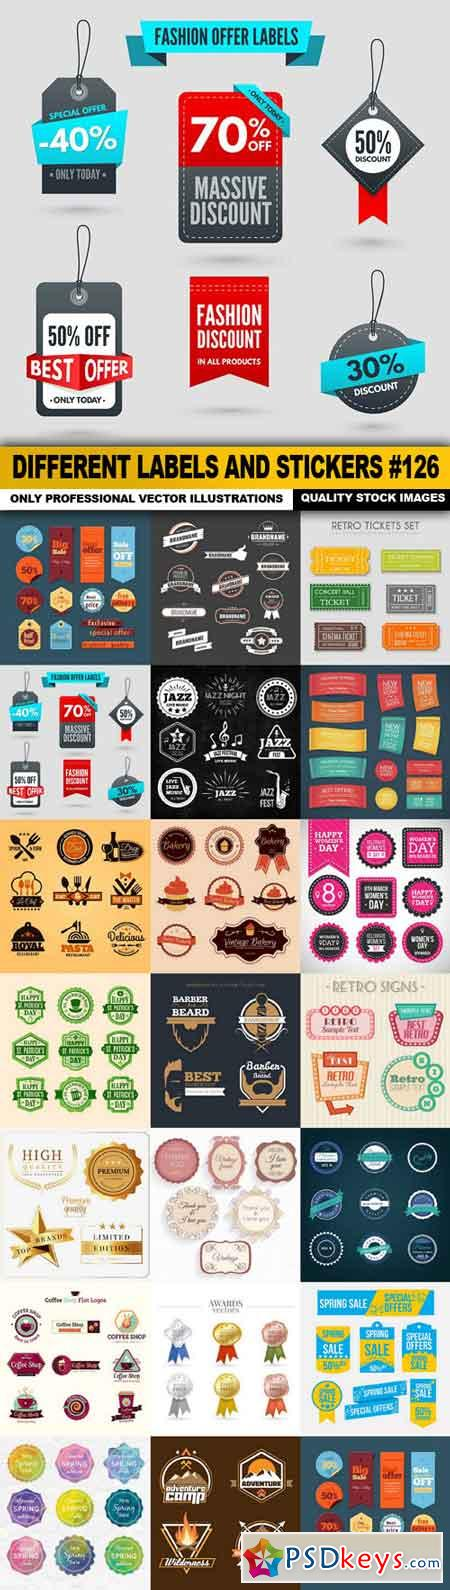 Different Labels And Stickers #126 - 20 Vector